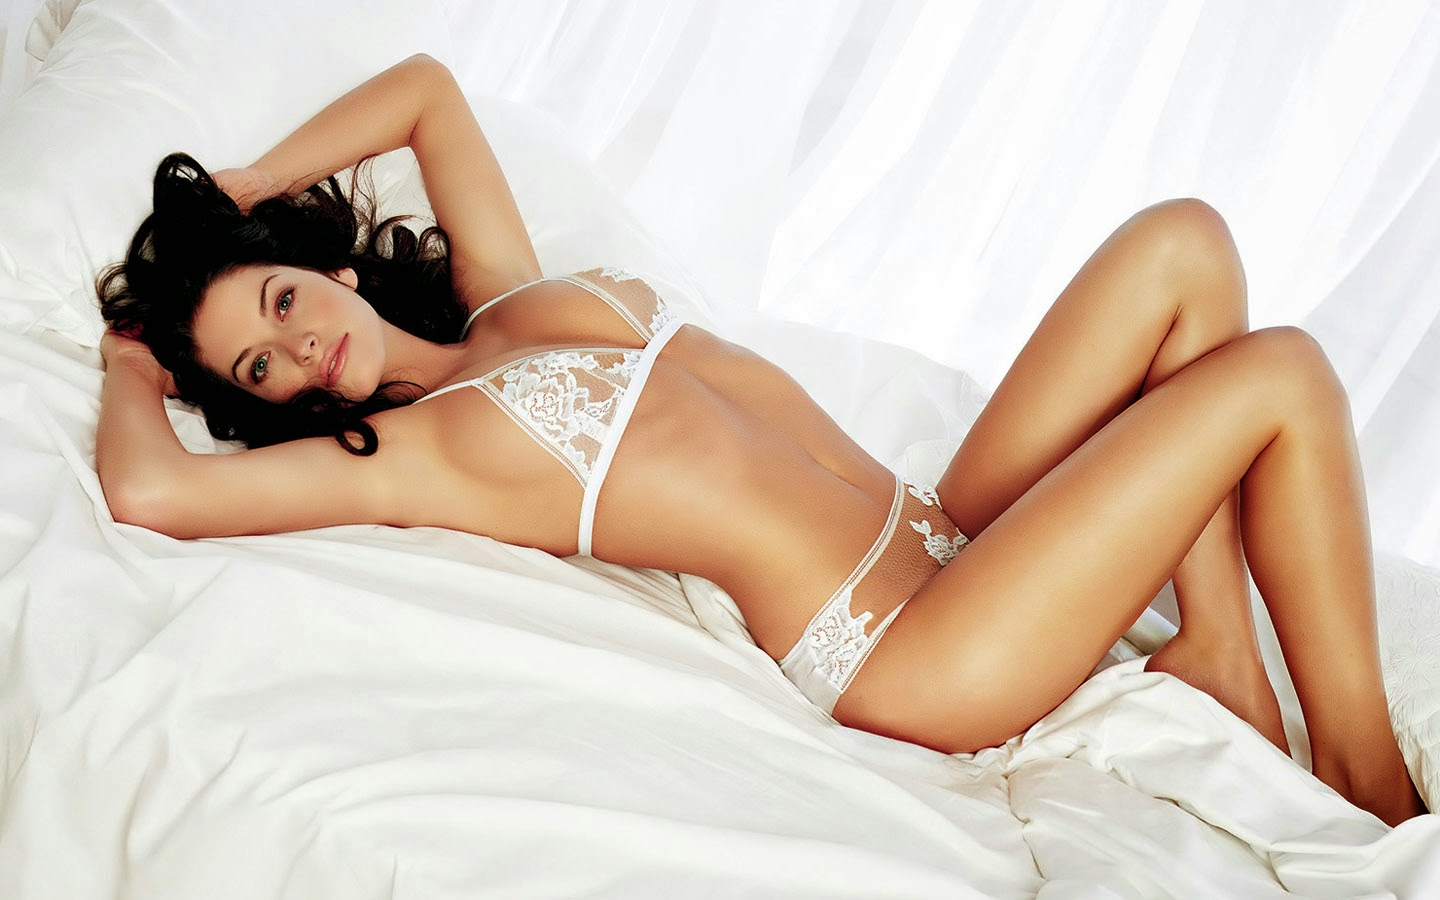 Sexiest Lingerie Pictures 12